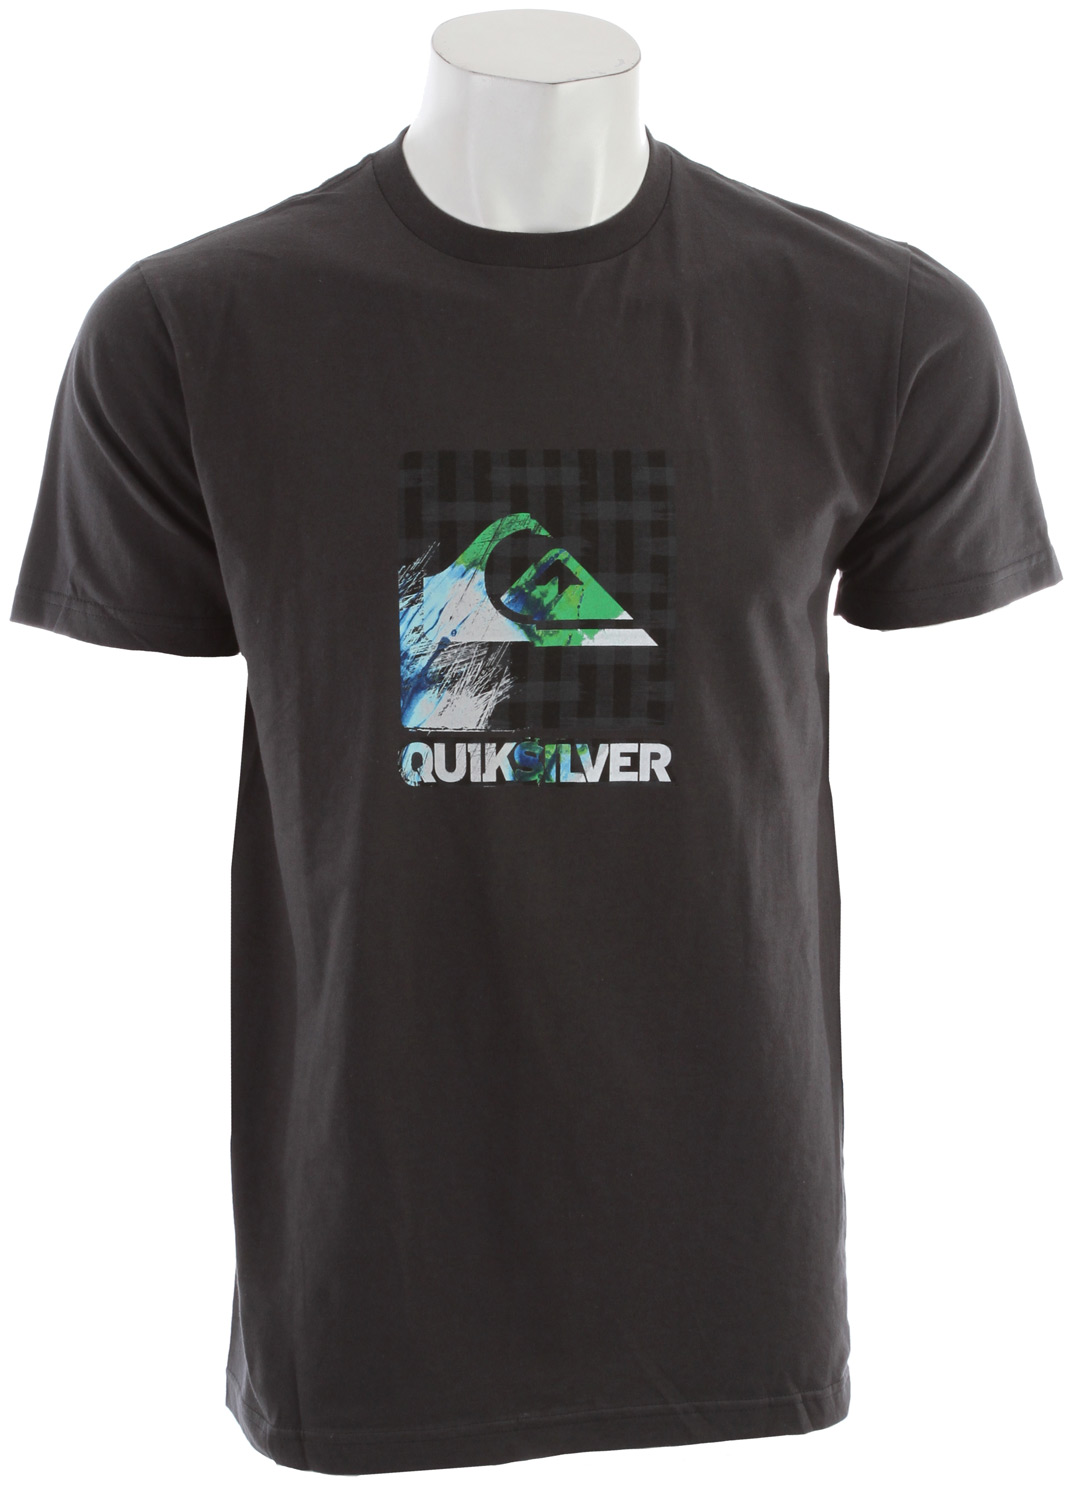 Surf Those that wear the Mostest slim fit tee gets the mostest amount of girls. Enjoy.Key Features of the Quiksilver The Mostest Slim Fit T-Shirt: 30 singles ringspun combed. SOLIDS: 100% cotton. ATHLETIC HEATHER: 90% cotton, 10% polyester. Small logo on back of left sleeve. Slim fit. Machine wash Imported. - $14.95